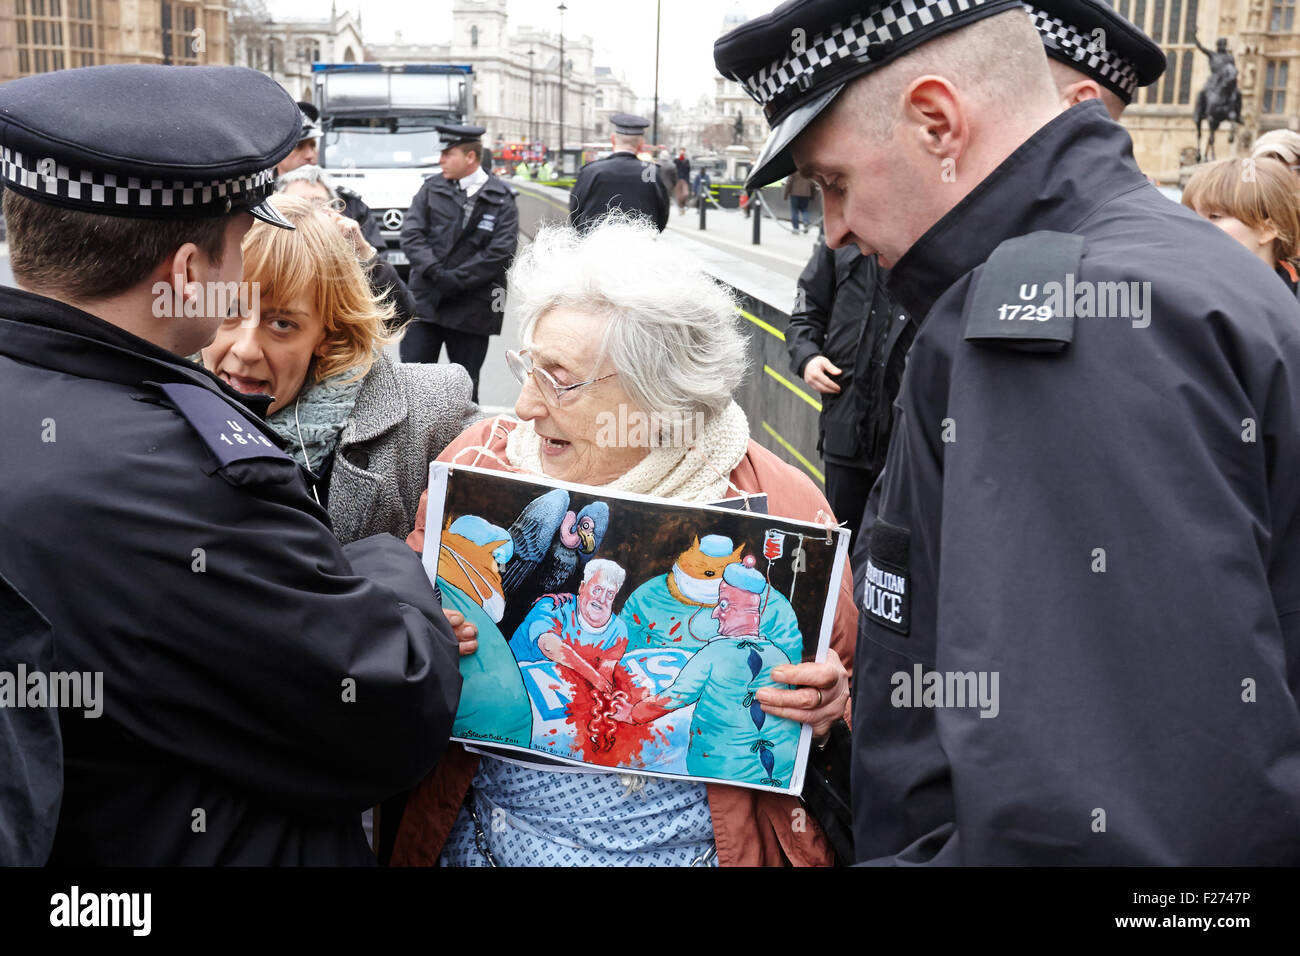 Protesters attract the attention of police while protesting over NHS funding cuts outside the Houses of Parliament - Stock Image